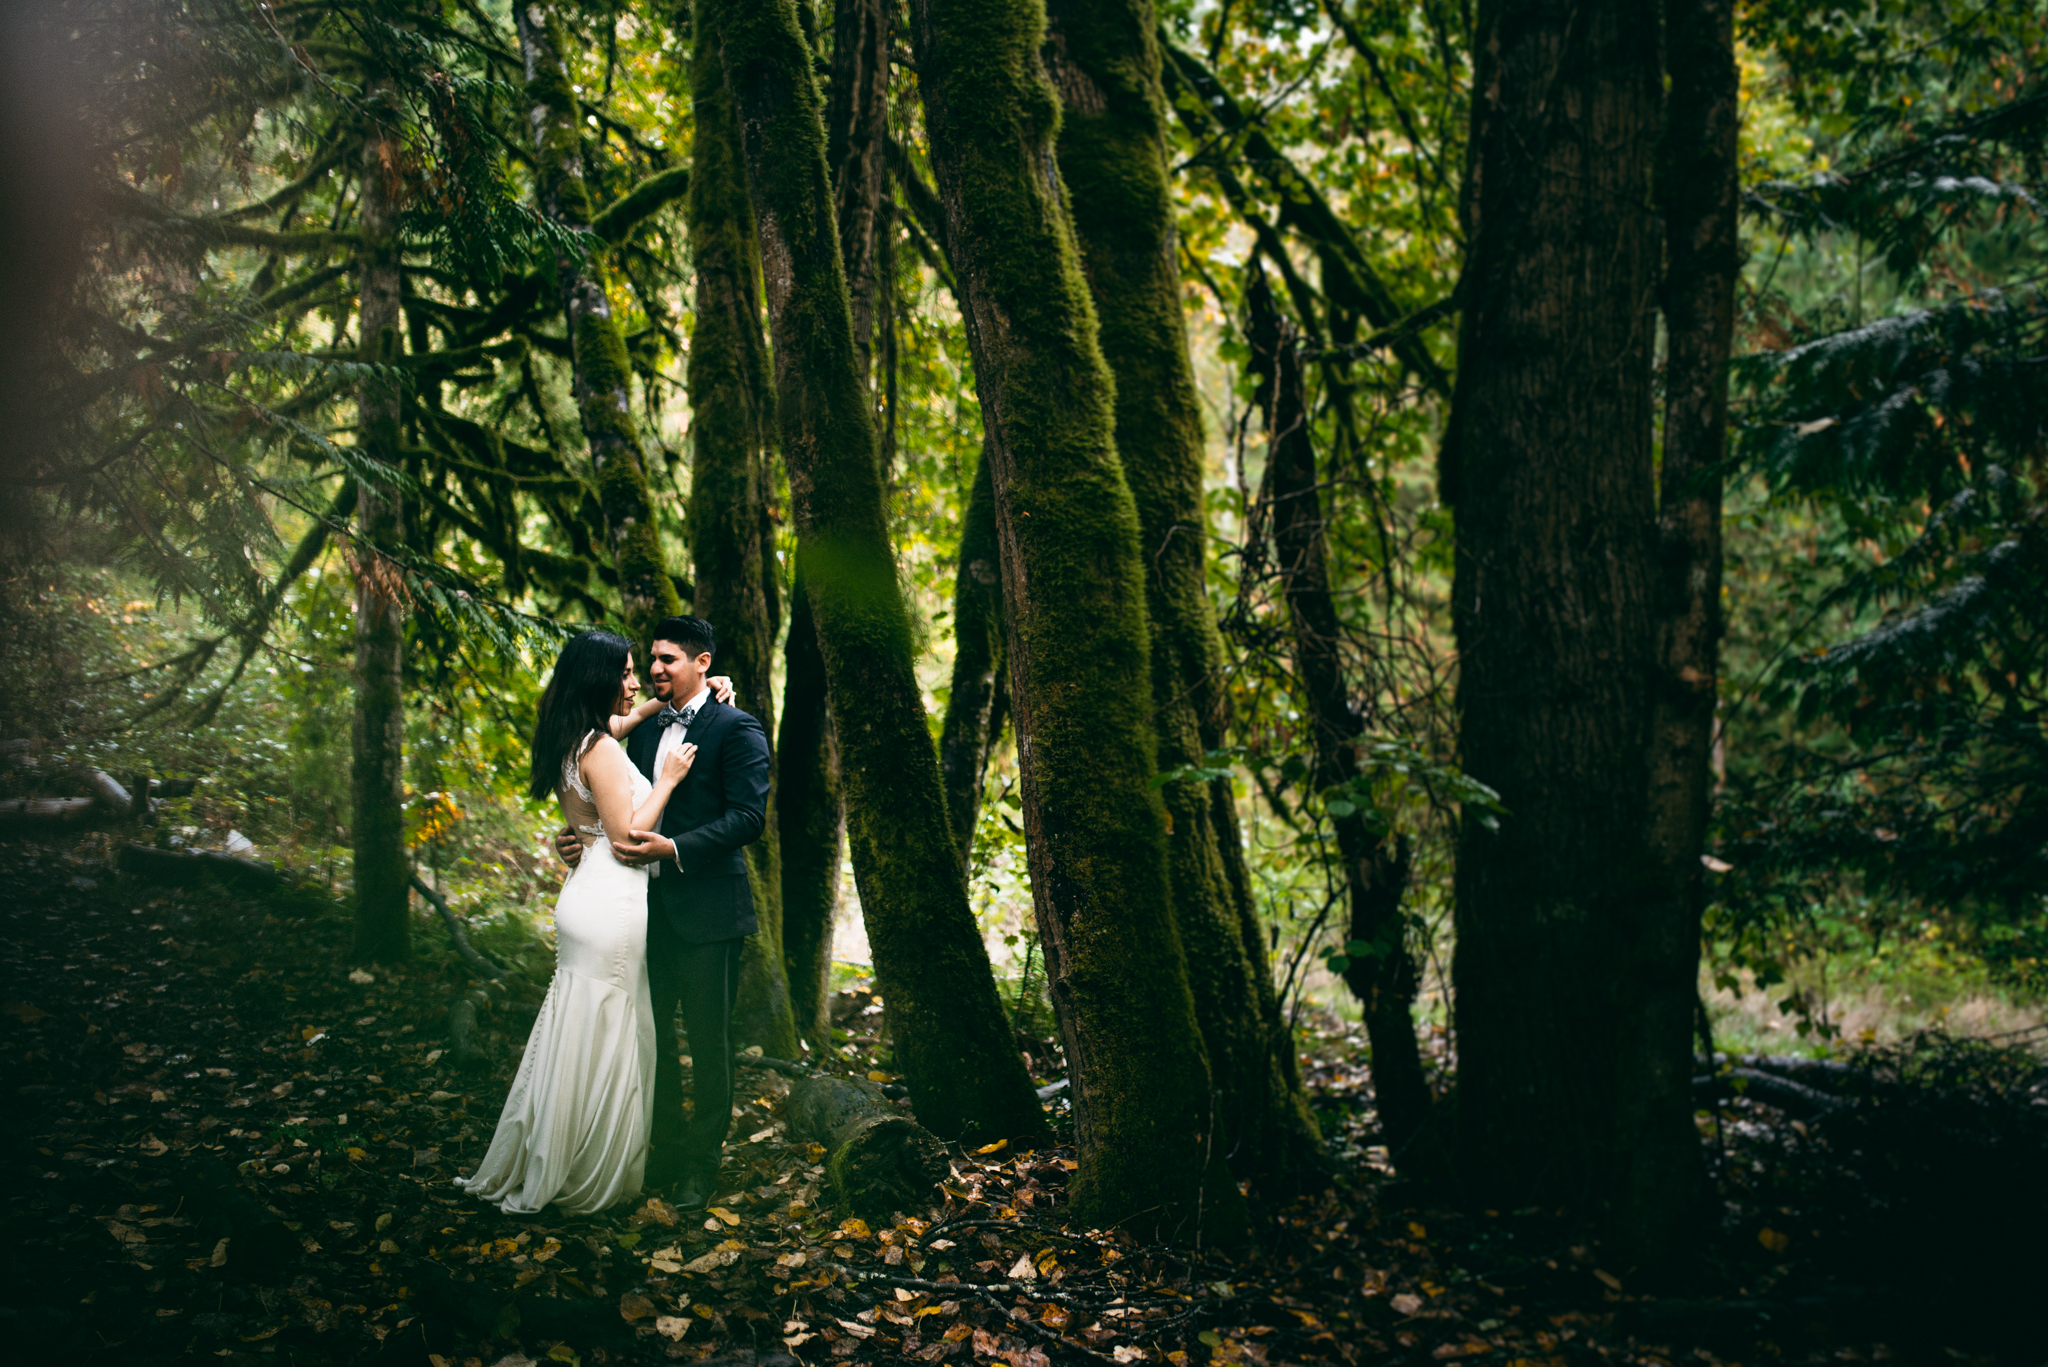 ©Isaiah & Taylor Photography - Los Angeles Wedding - Snoqualmie, Washington Honeymoon-045.jpg